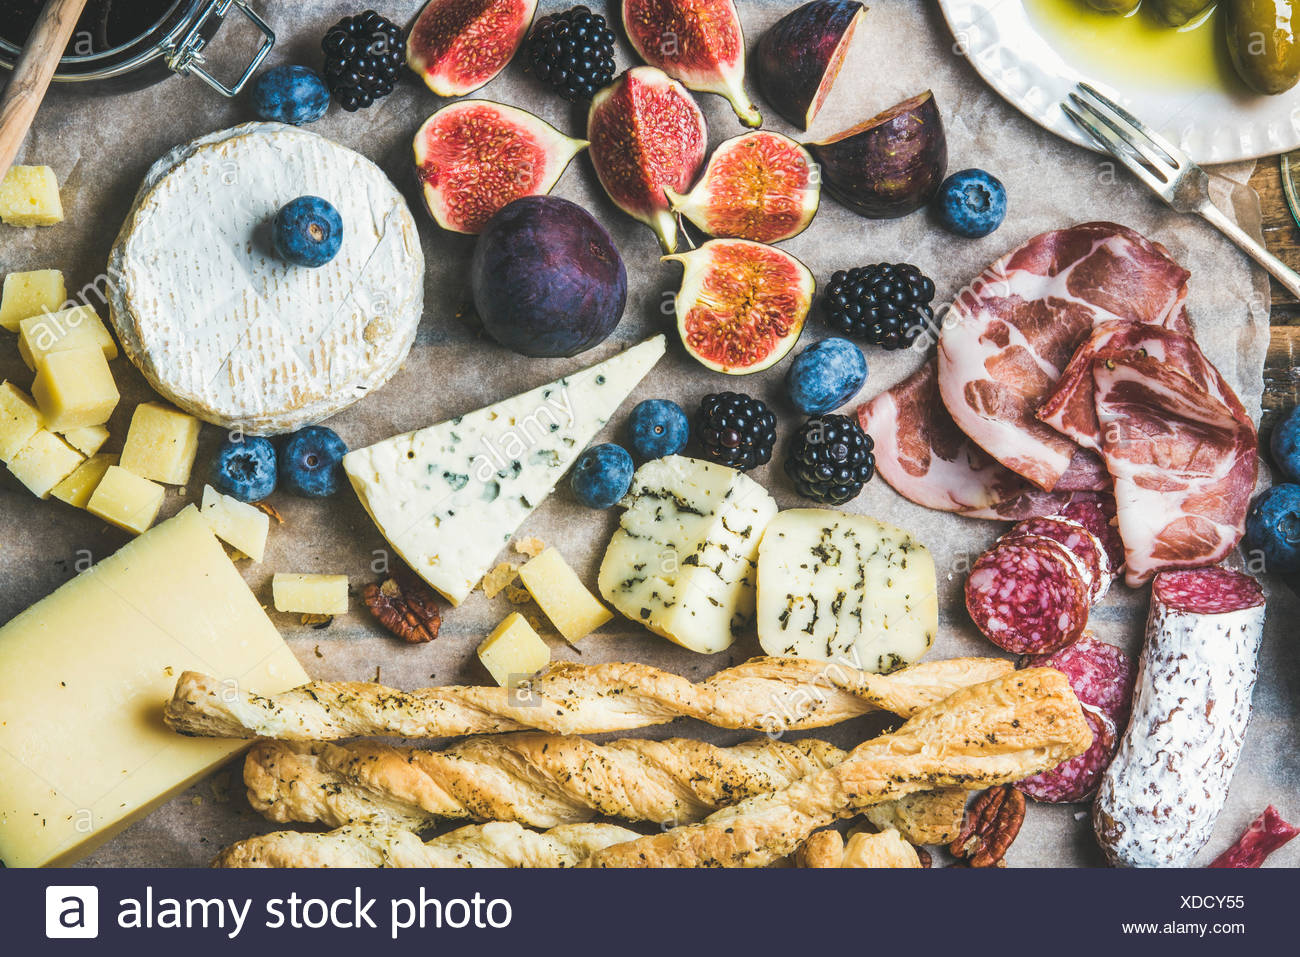 Close-up of wine snack set with meat variety, bread, green olives, figs, nuts and berries on wax paper, top view, horizontal com - Stock Image